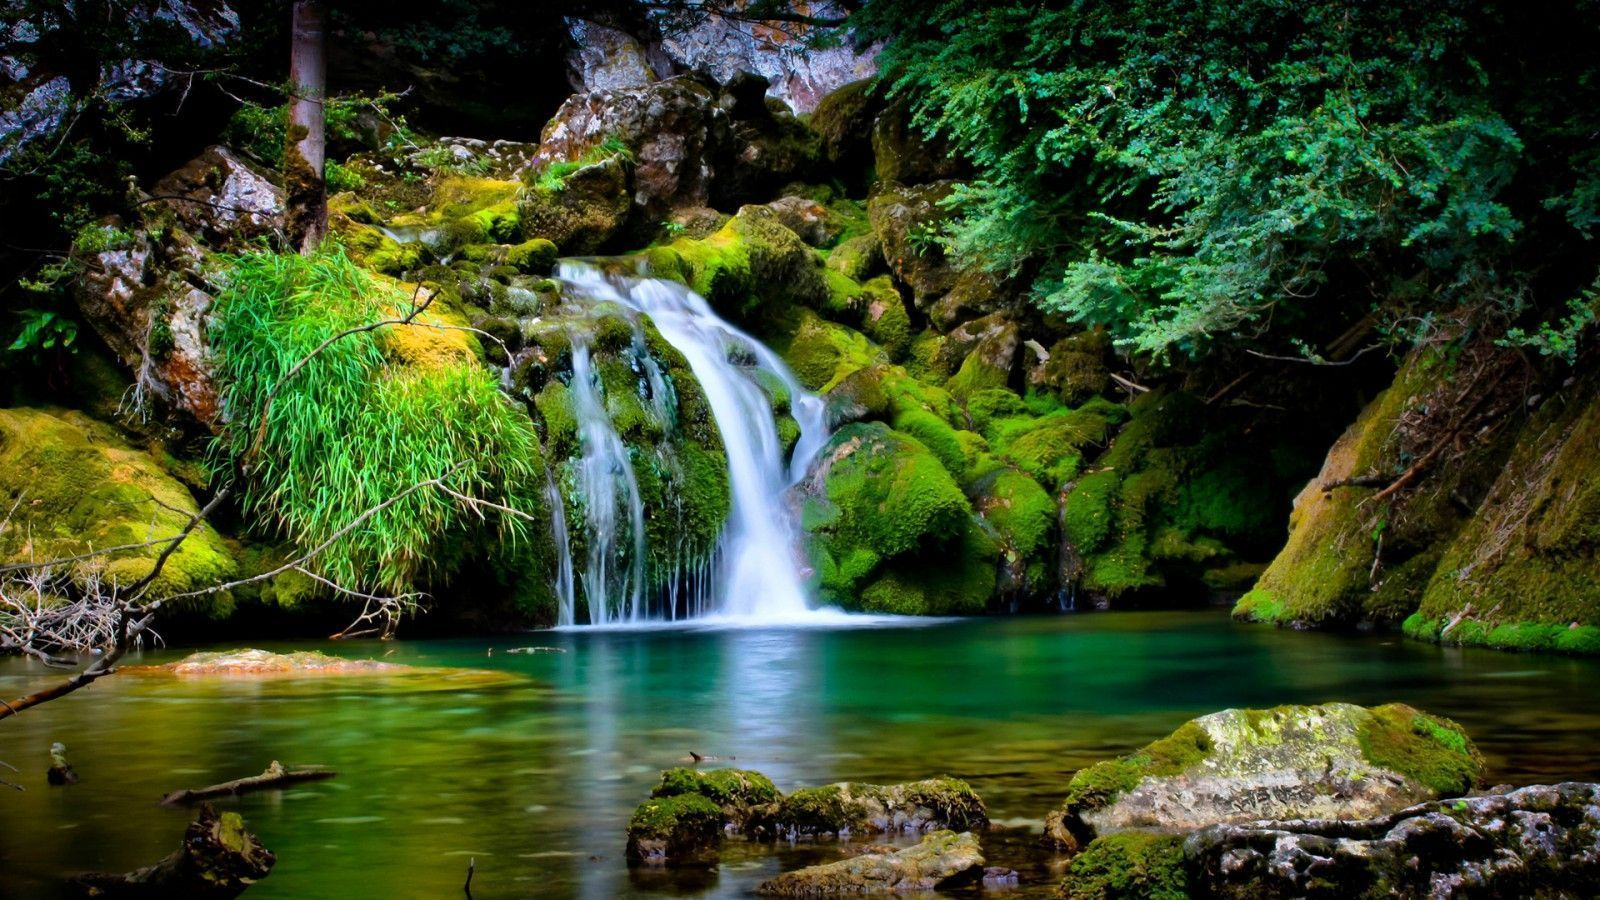 ry cool nature pictures full hd awesome cool nature | hd